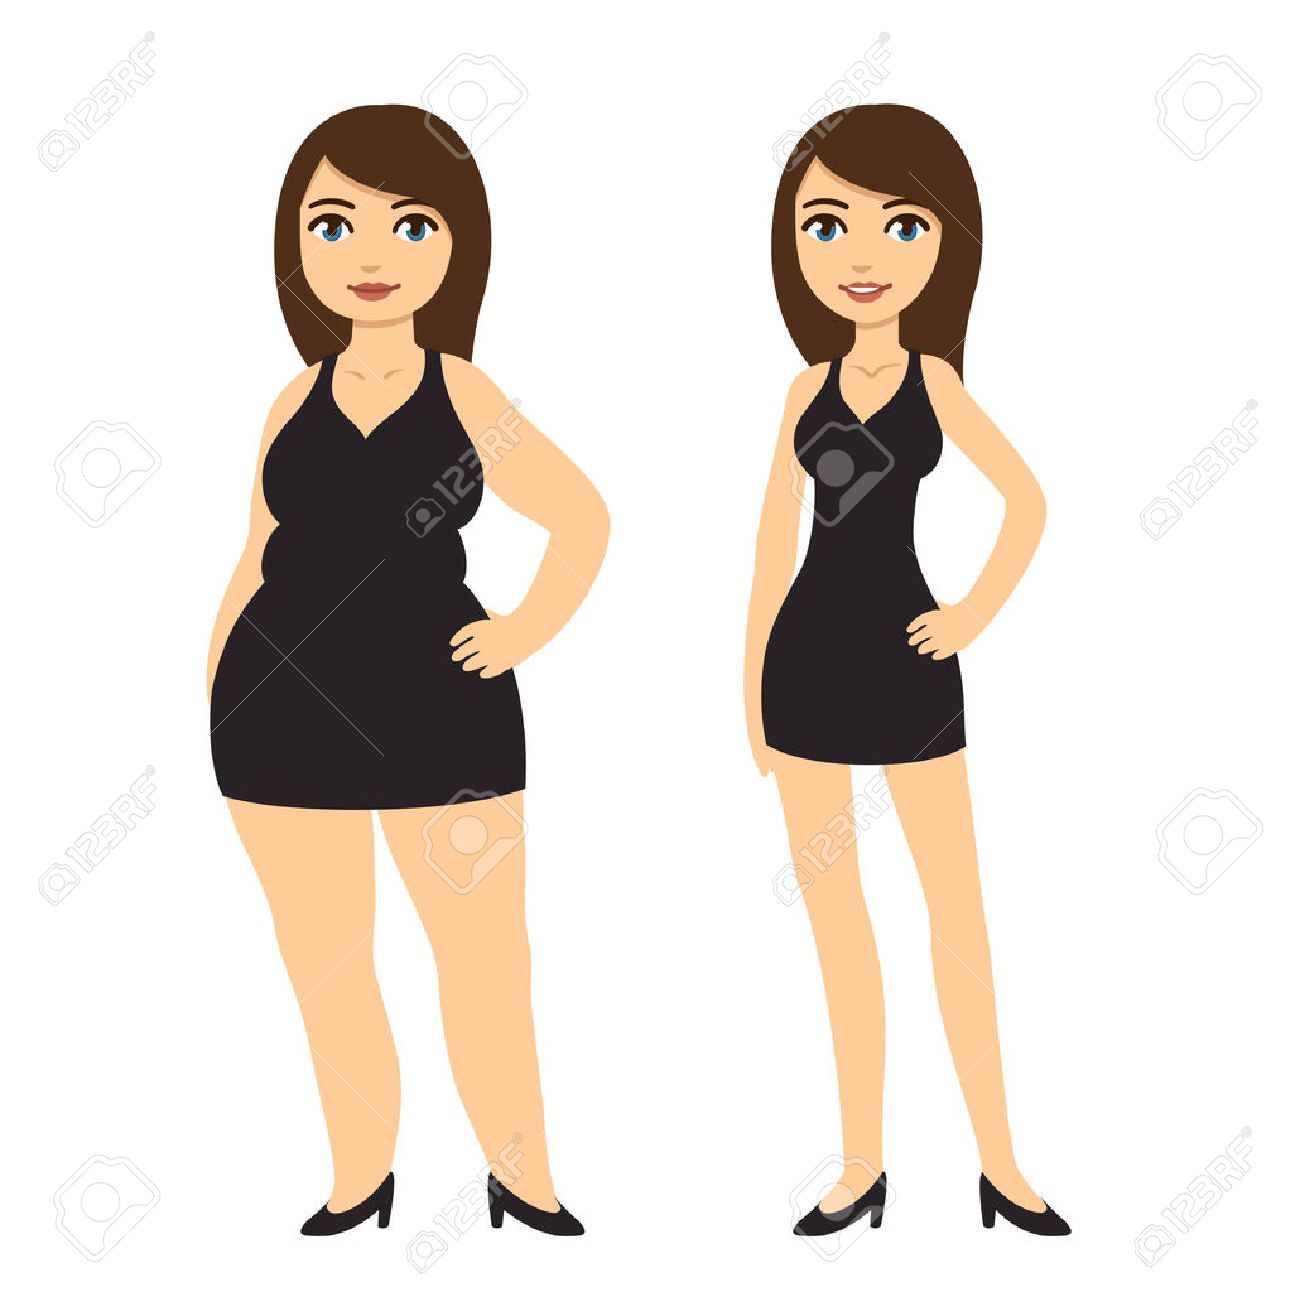 Cartoon Woman In Black Dress Skinny And Overweight Weight Loss Royalty Free Cliparts Vectors And Stock Illustration Image 46648063